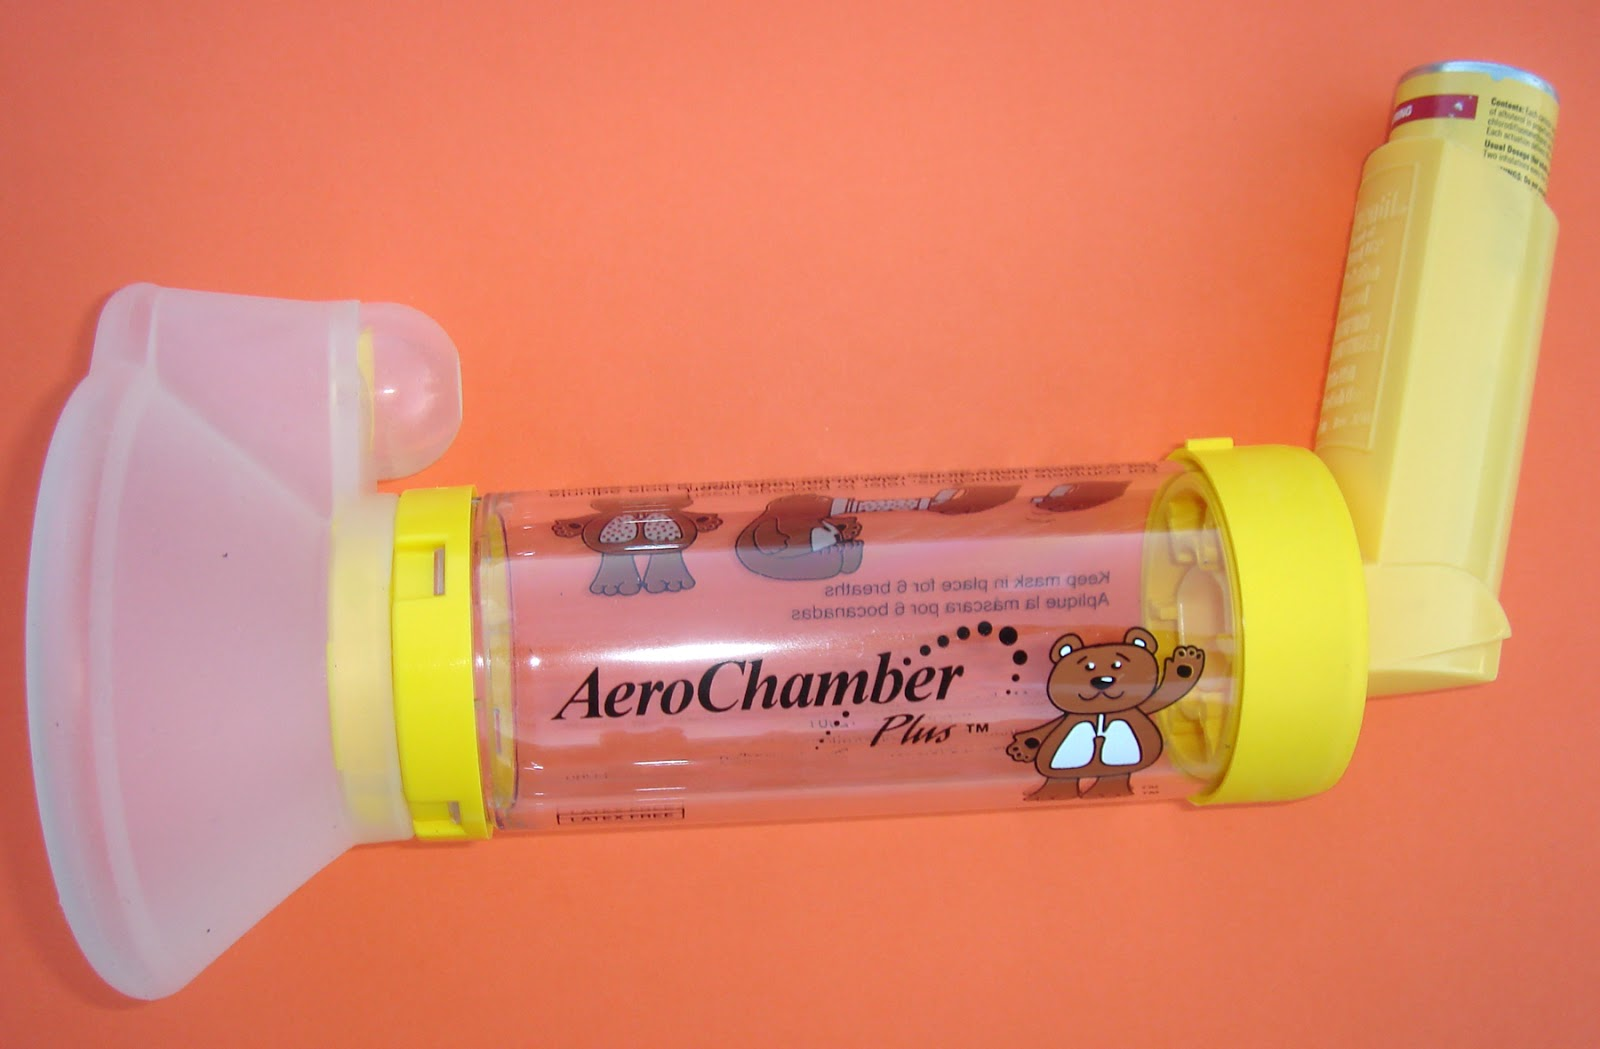 Inhaler - This is what Tom was given. Image from www.babygaga.com